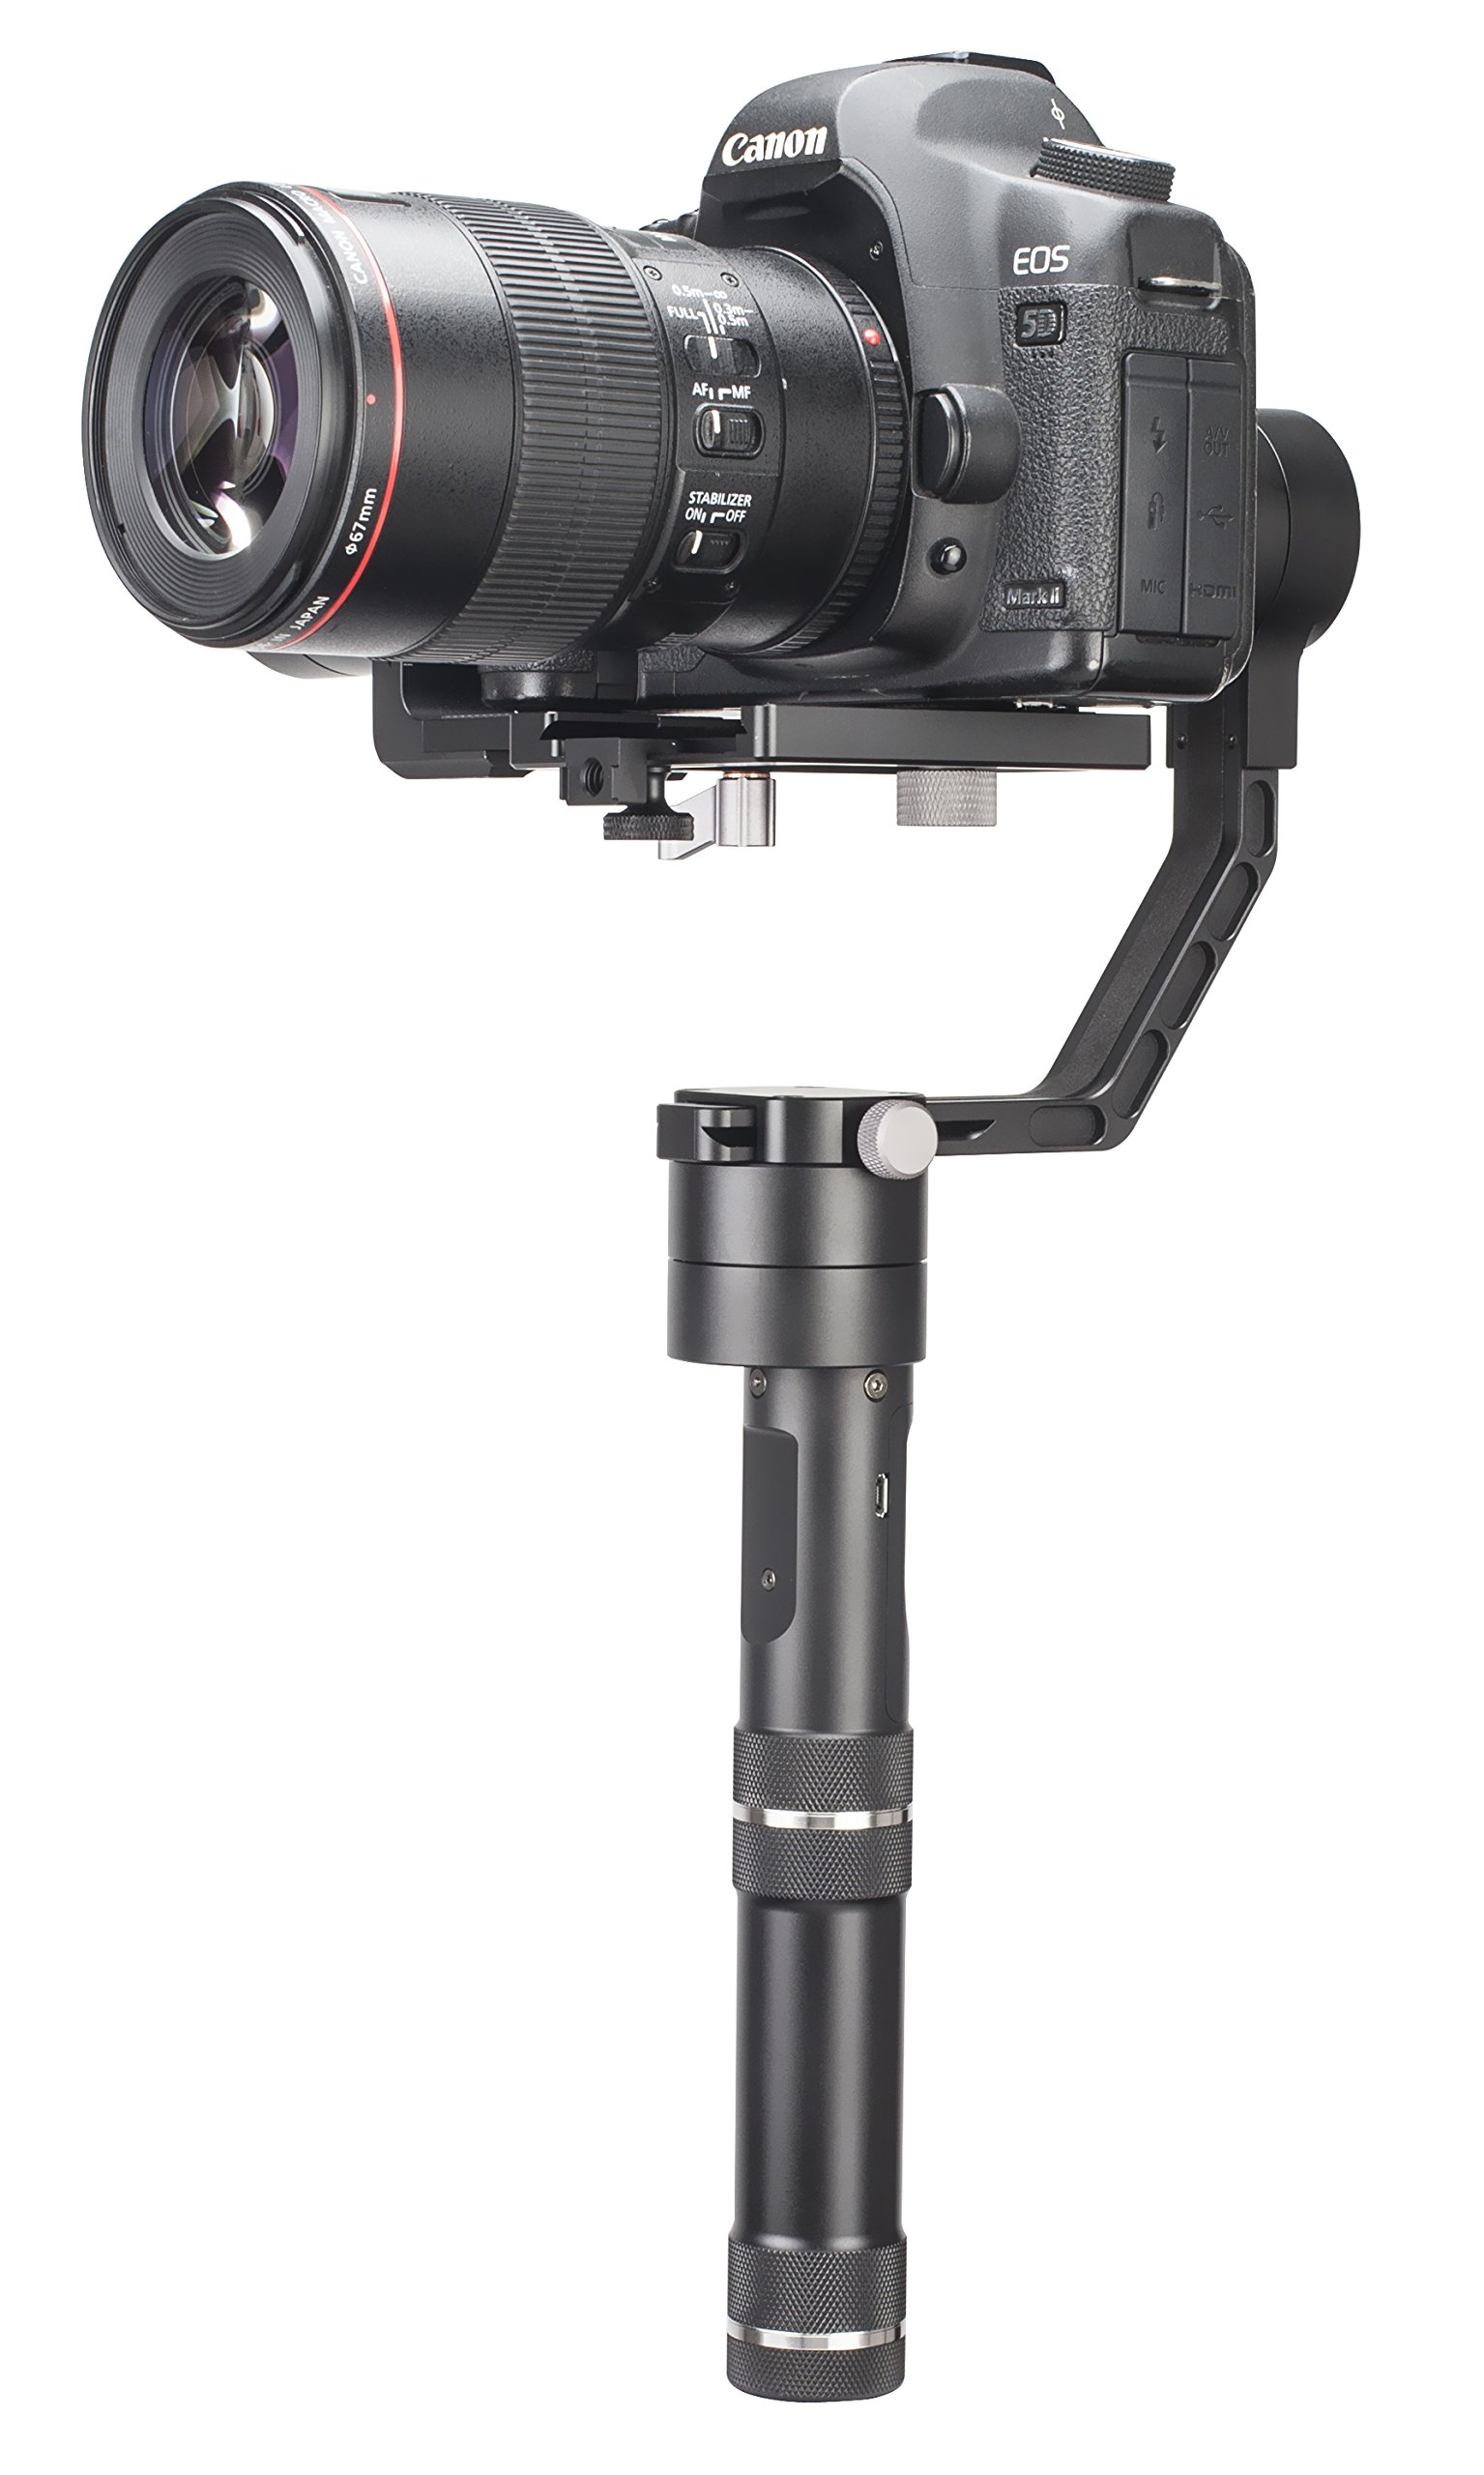 Zhiyun-Tech Crane V2 3-Axis Bluetooth Handheld Gimbal Stabilizer for ILC Mirrorless Cameras Includes Hard Case by zhi yun